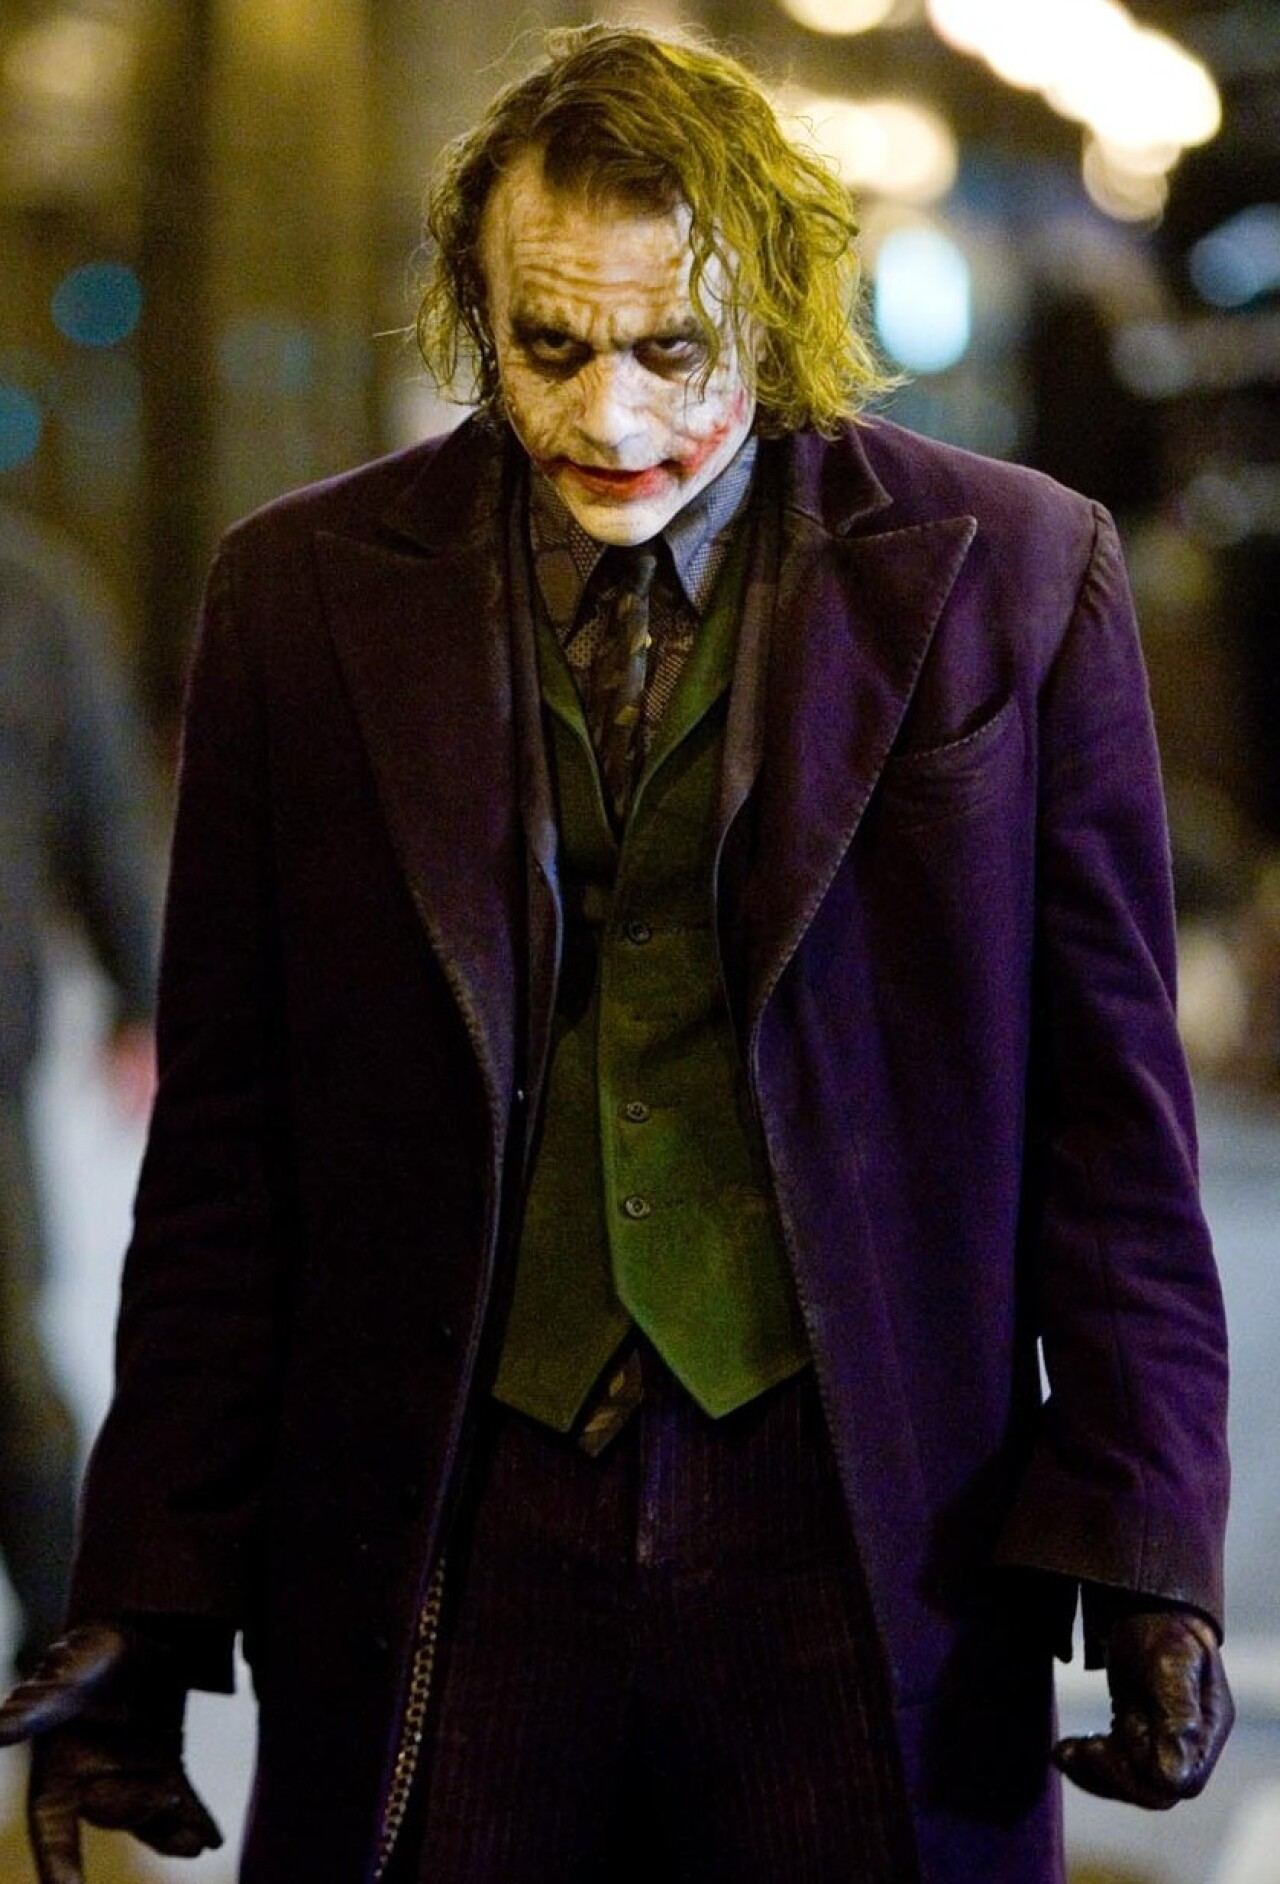 Heath_Ledger_as_the_Joker.JPG